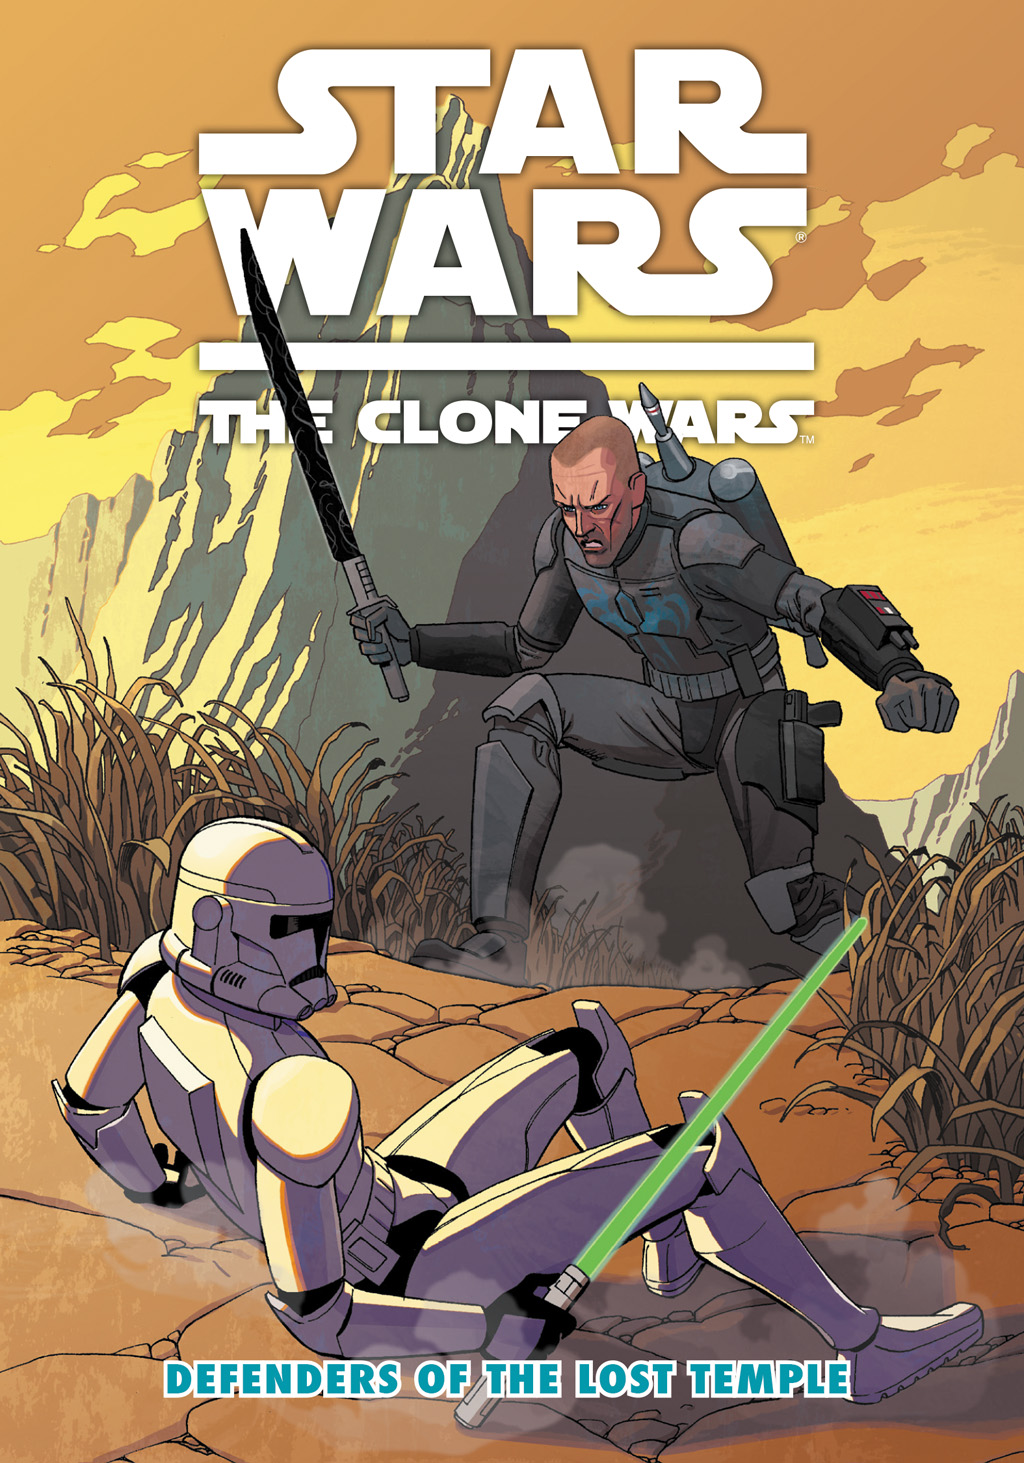 Read online Star Wars: The Clone Wars - Defenders of the Lost Temple comic -  Issue # Full - 1